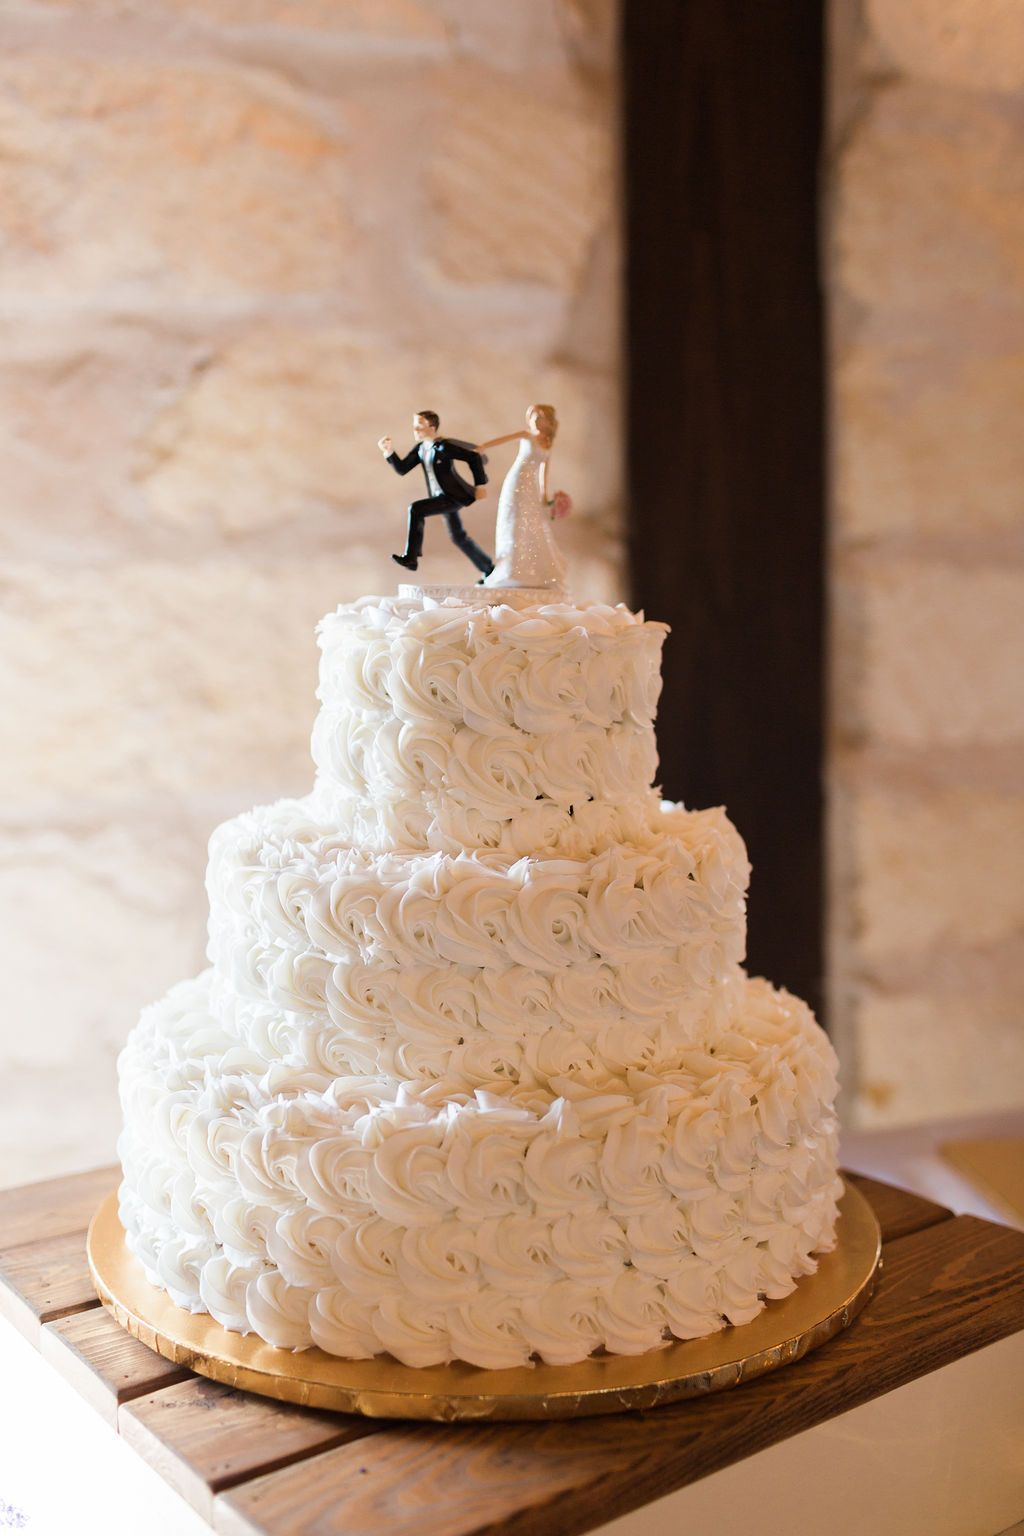 Wedding Venue Norman Oklahoma With Images Funny Wedding Cakes